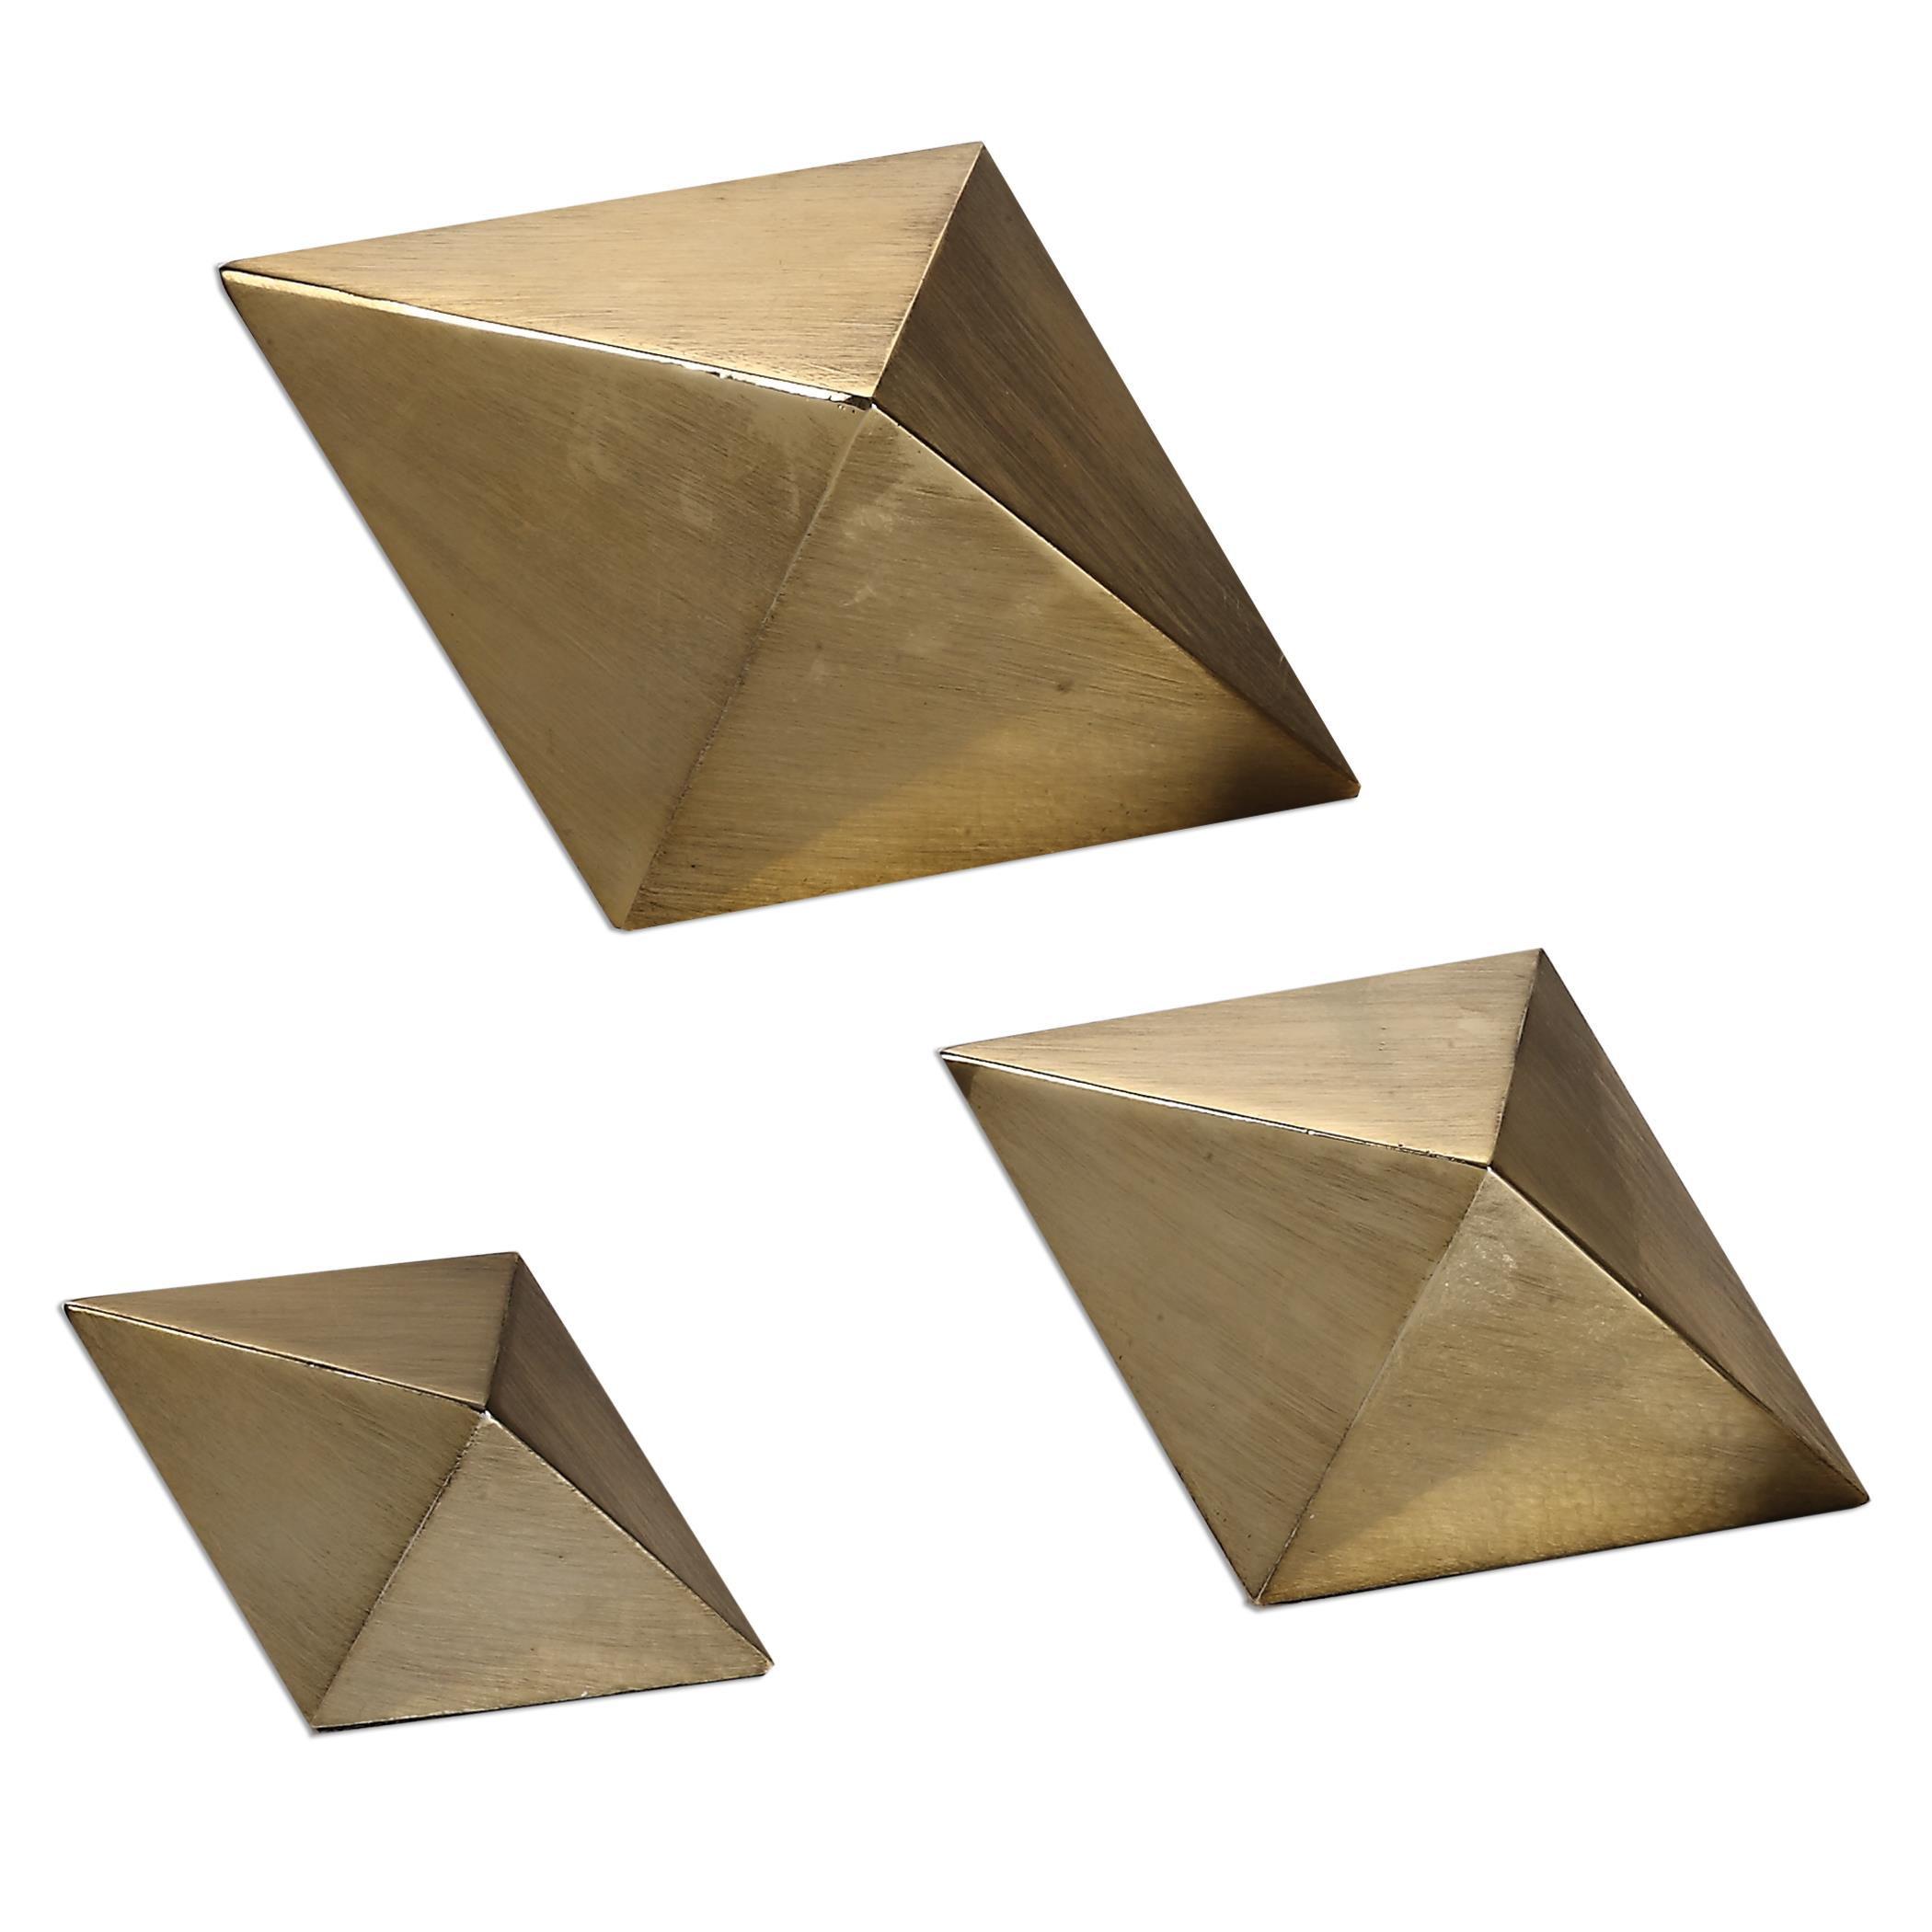 Accessories - Statues and Figurines Rhombus Champagne Accents, S/3 by Uttermost at Mueller Furniture